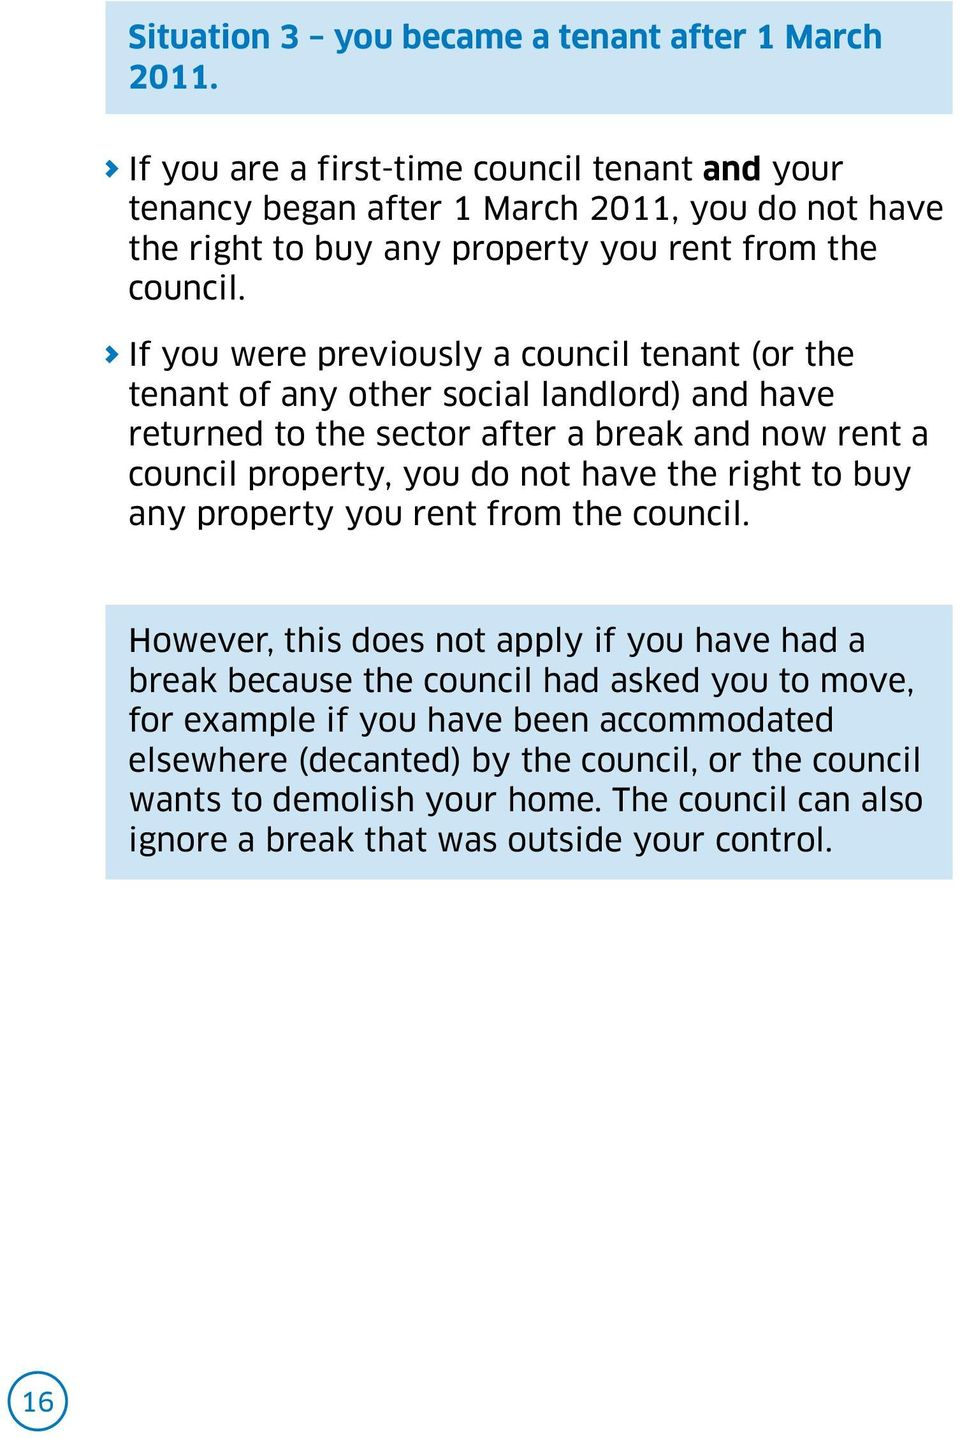 If you were previously a council tenant (or the tenant of any other social landlord) and have returned to the sector after a break and now rent a council property, you do not have